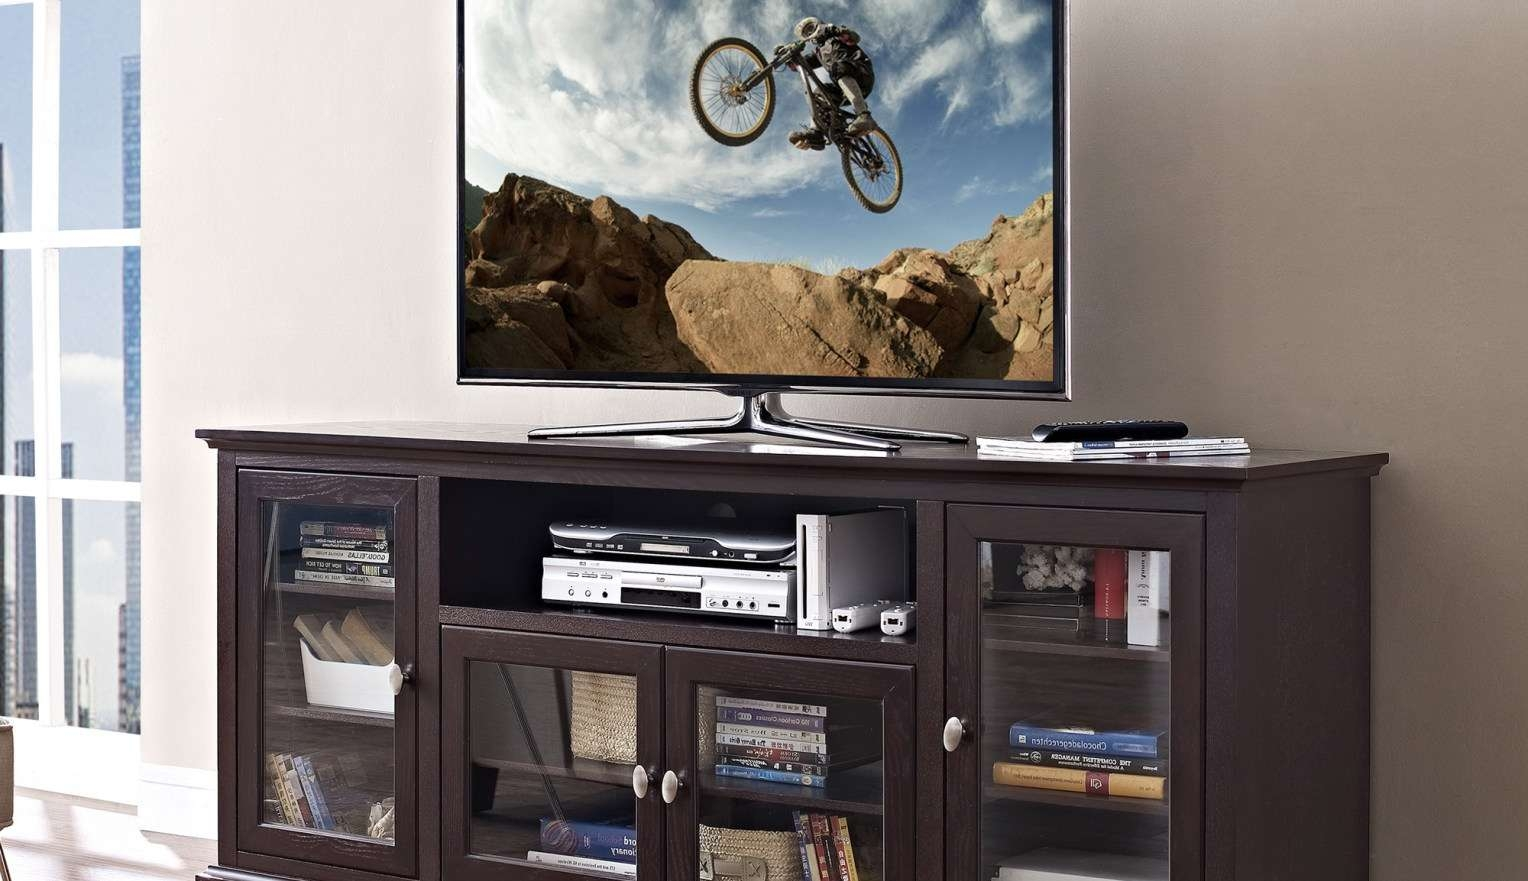 Tv : Astounding Corner Tv Stands For 46 Inch Flat Screen Satiating With Regard To Corner Tv Stands 46 Inch Flat Screen (View 11 of 15)